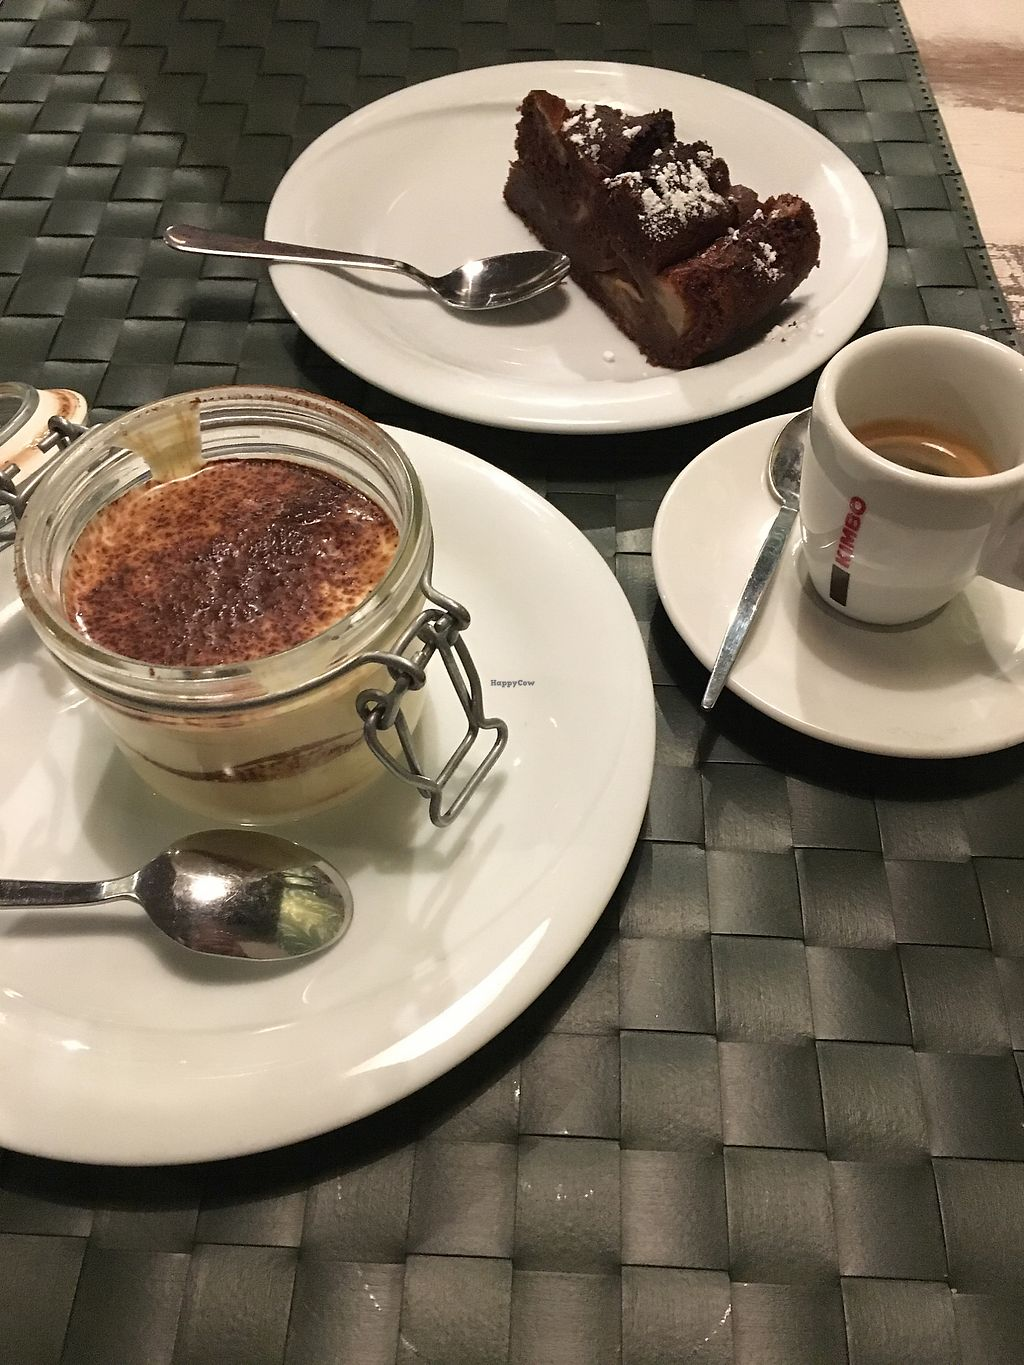 """Photo of Nirvana  by <a href=""""/members/profile/suzyseraphina"""">suzyseraphina</a> <br/>Fabulous tiramisu & chocolate with pear cake <br/> March 23, 2018  - <a href='/contact/abuse/image/92784/375003'>Report</a>"""